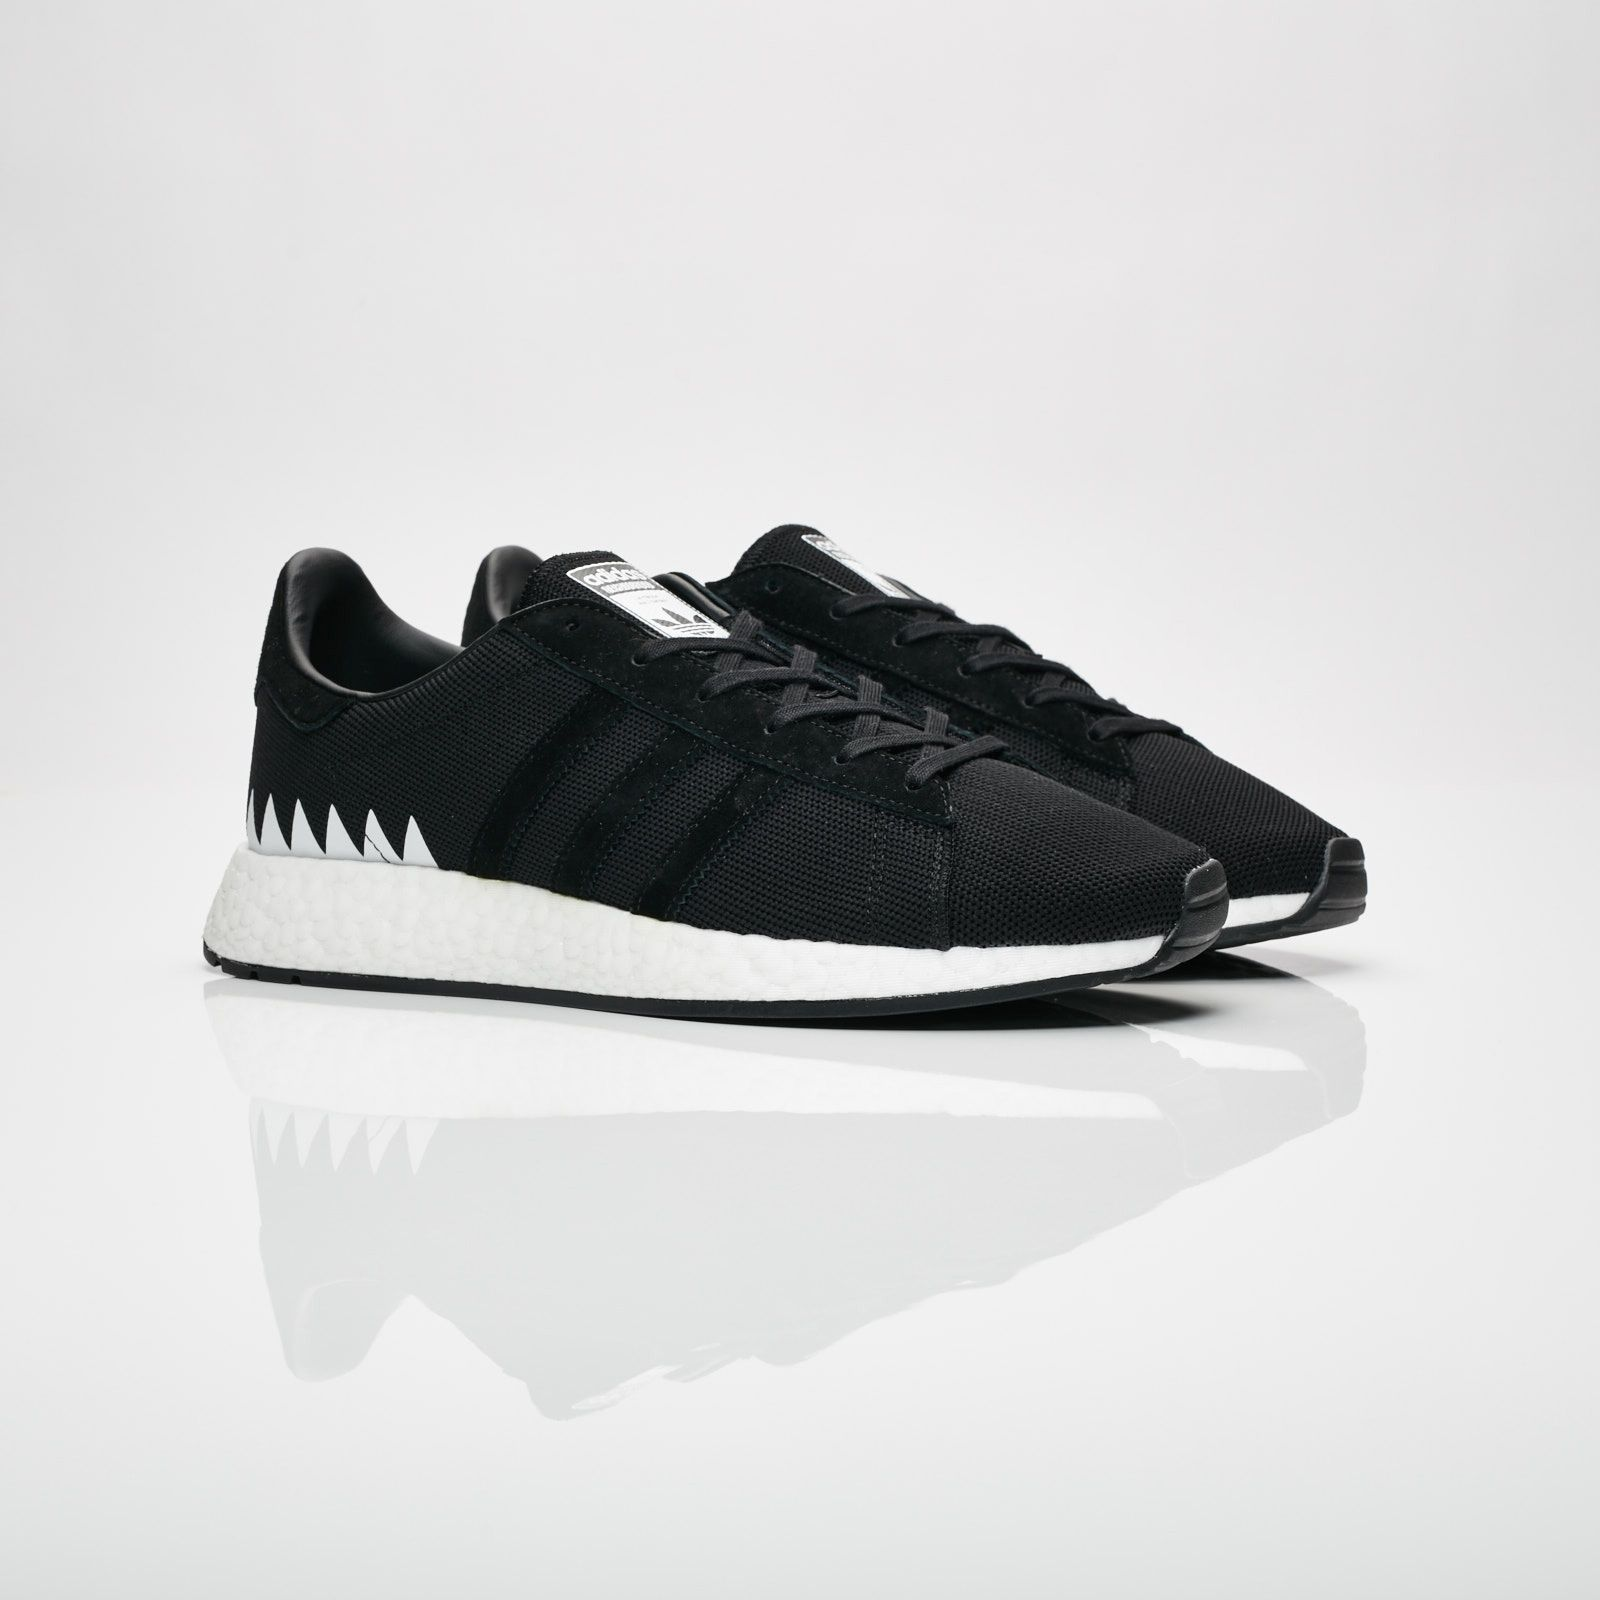 reputable site 029f8 a6387 adidas Gazelle Super x Neighborhood - Da8836 - Sneakersnstuff   sneakers   streetwear  online since 1999   Bhutto   Pinterest   Adidas, Adidas gazelle and ...